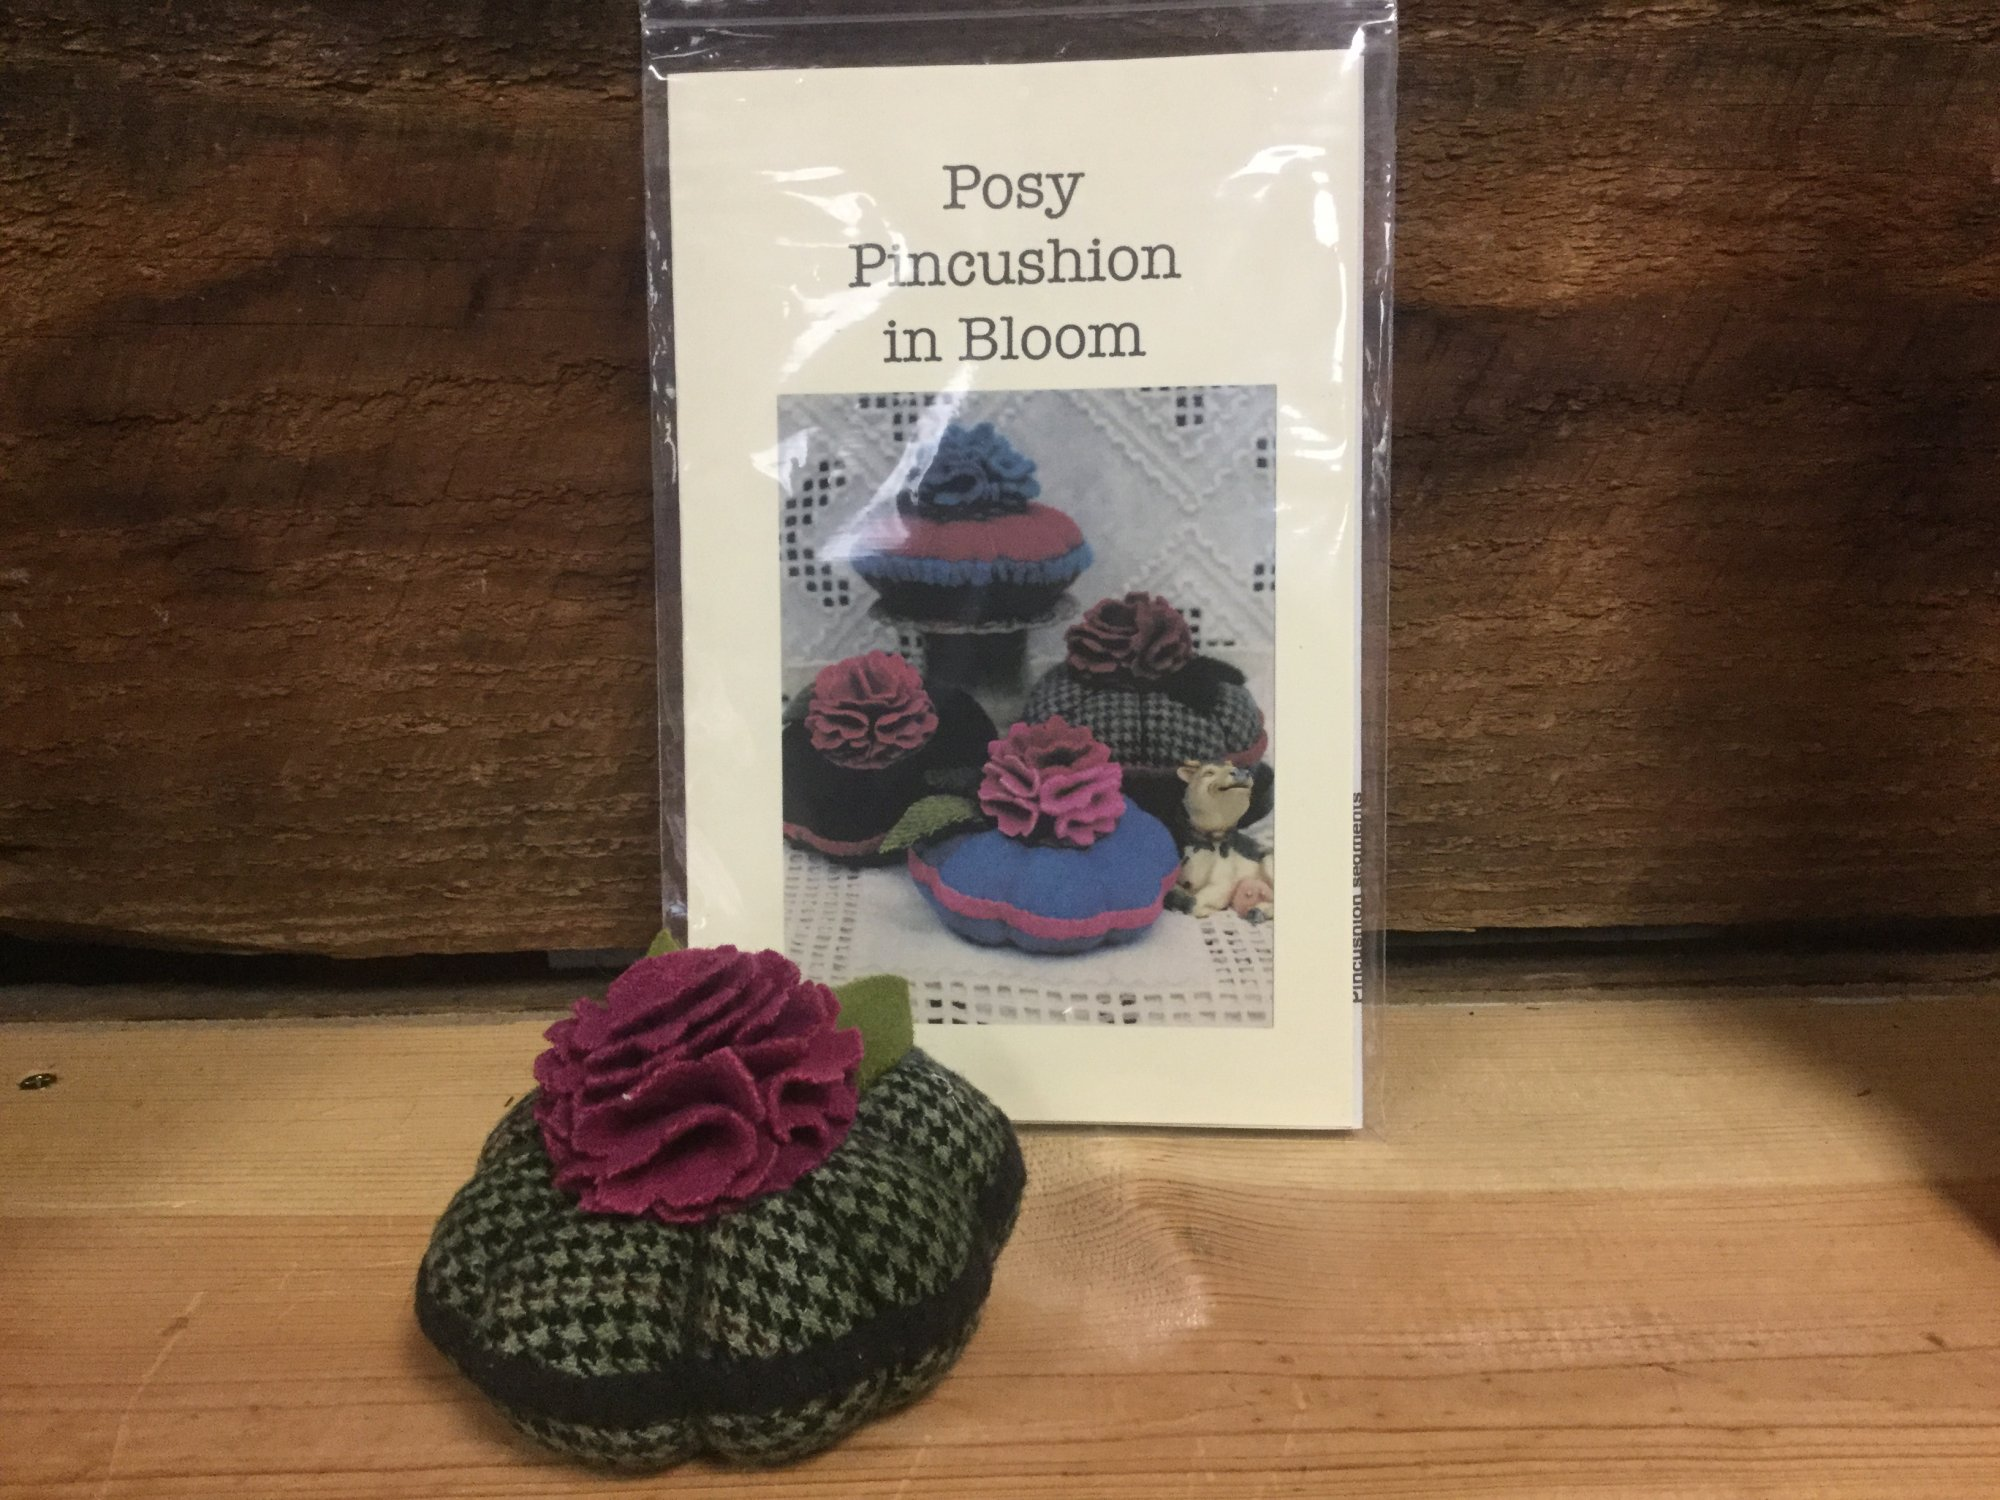 Posy Pincushion in Bloom